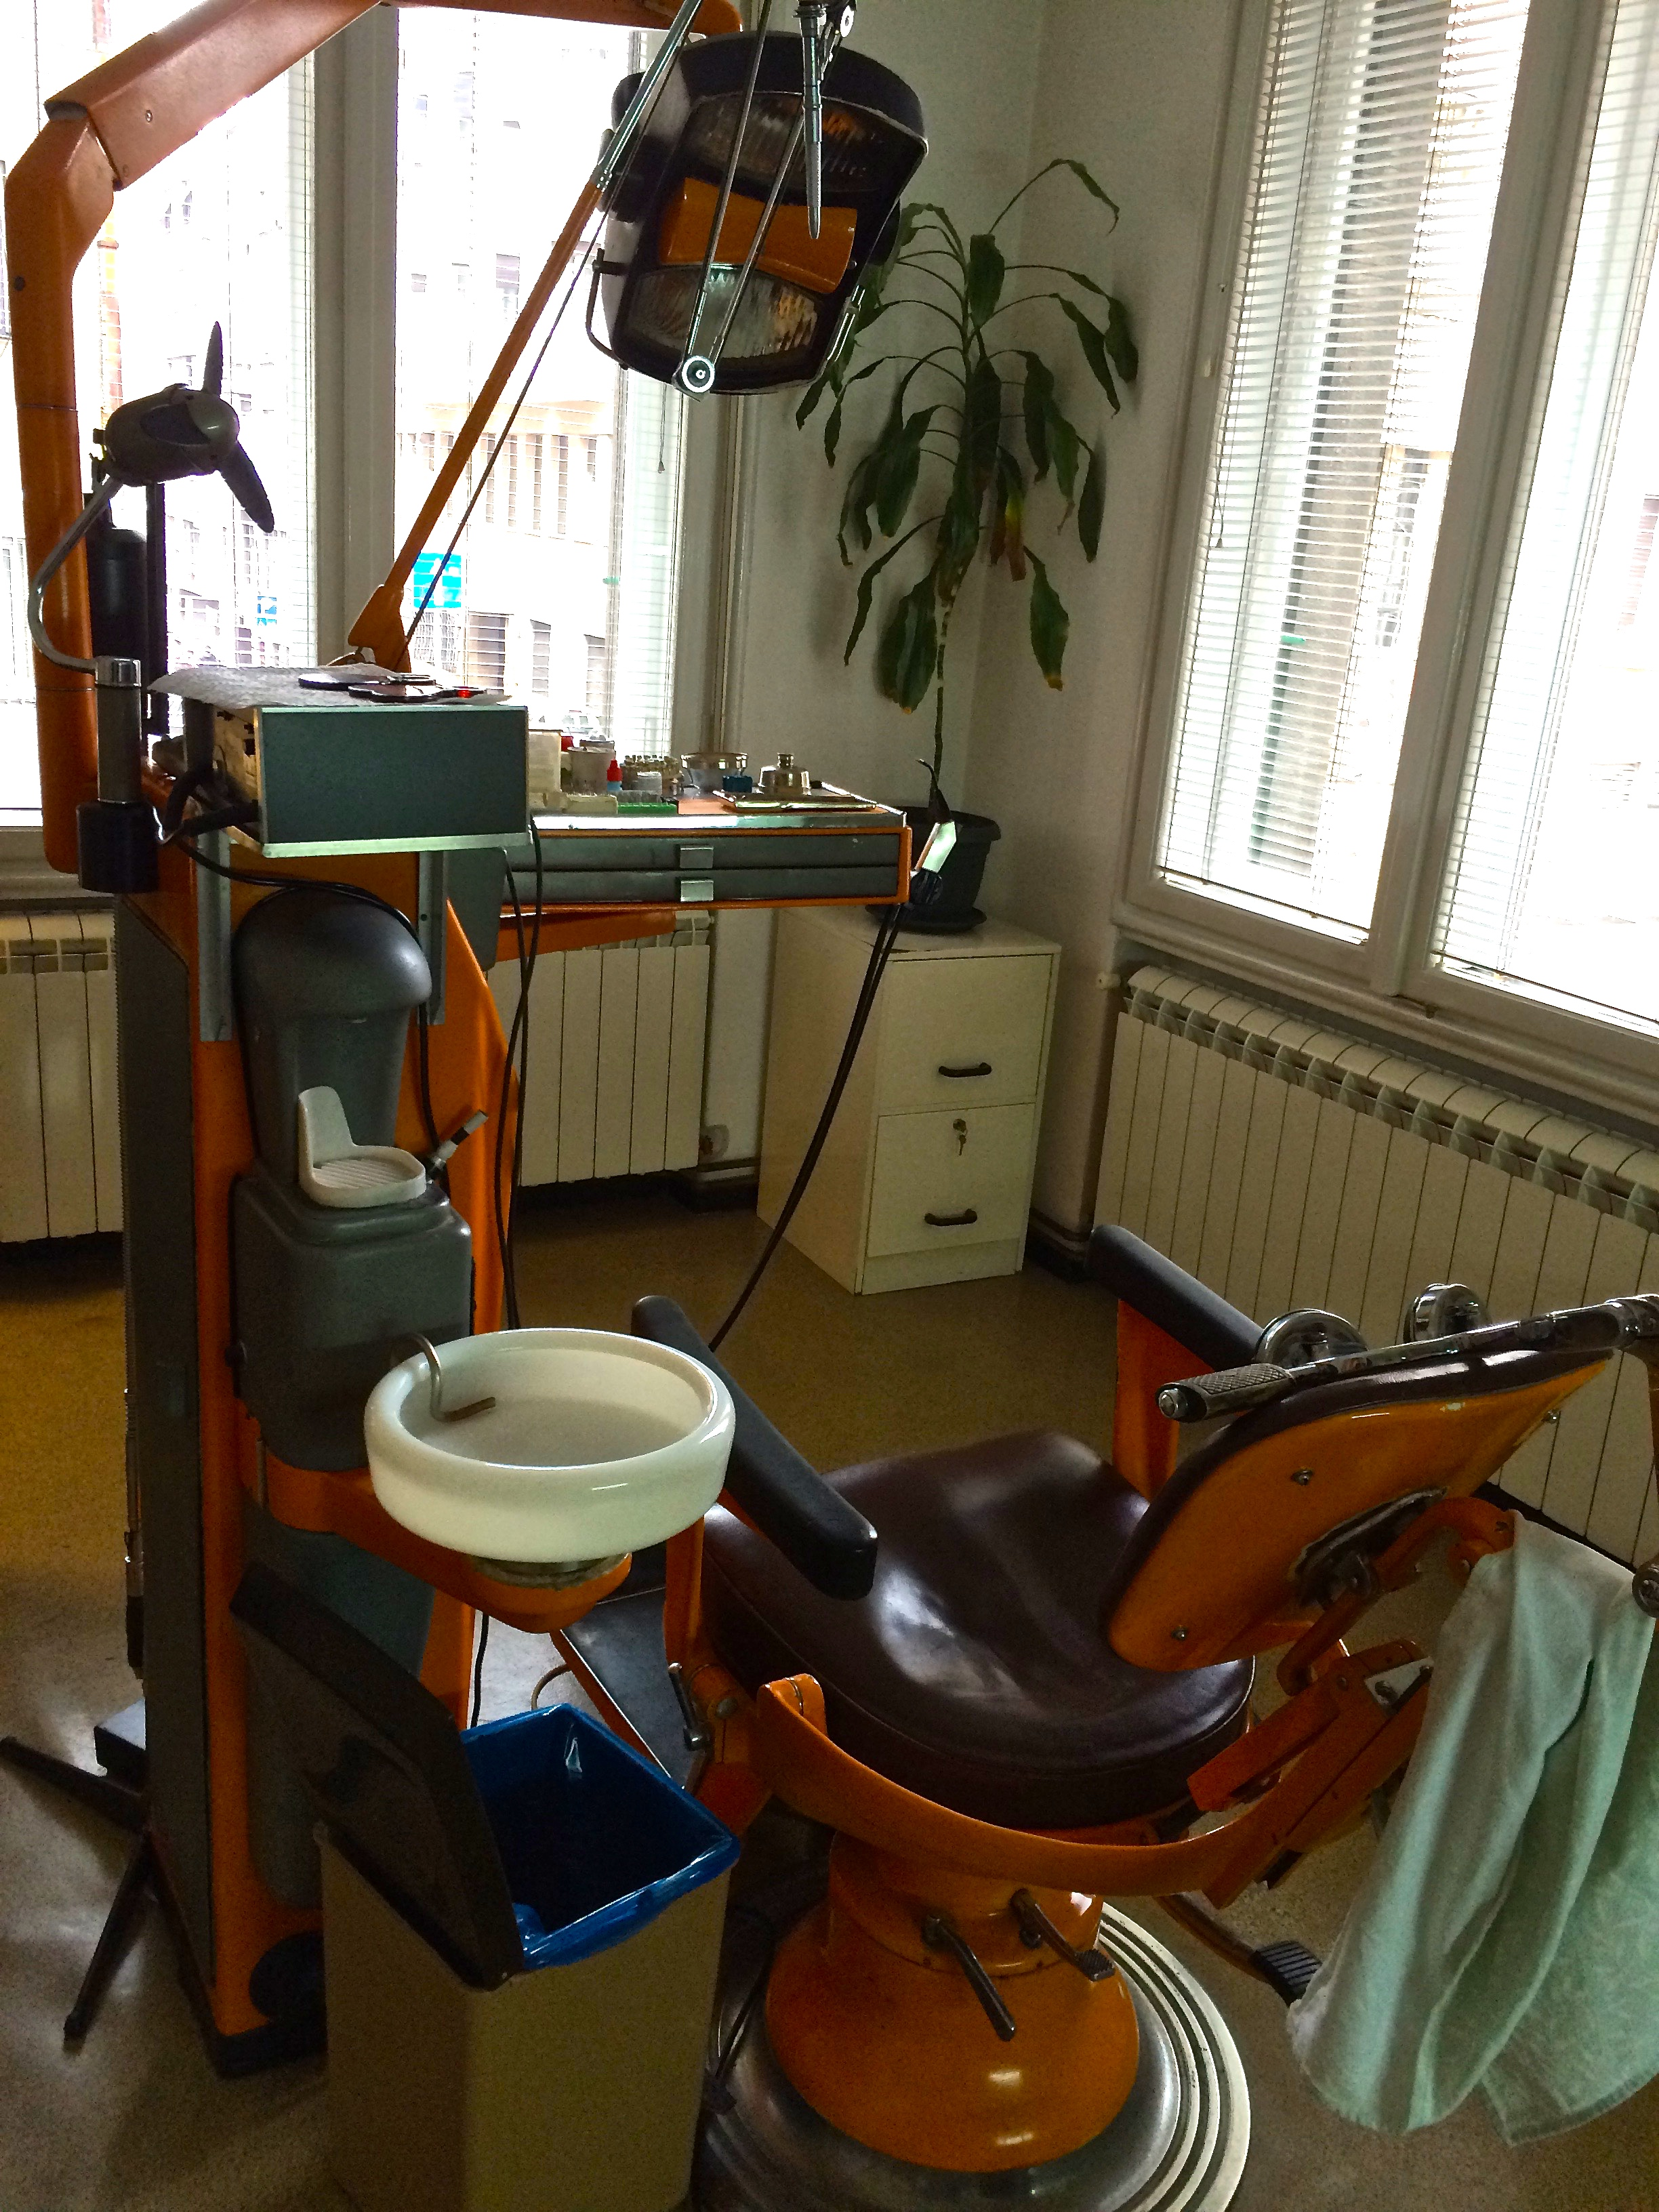 Just for fun, here's a picture of a dentist's chair here in Serbia. Moira's second cousin is a dentist, so she got some free work done while we're here. It's old, but it all works perfectly.